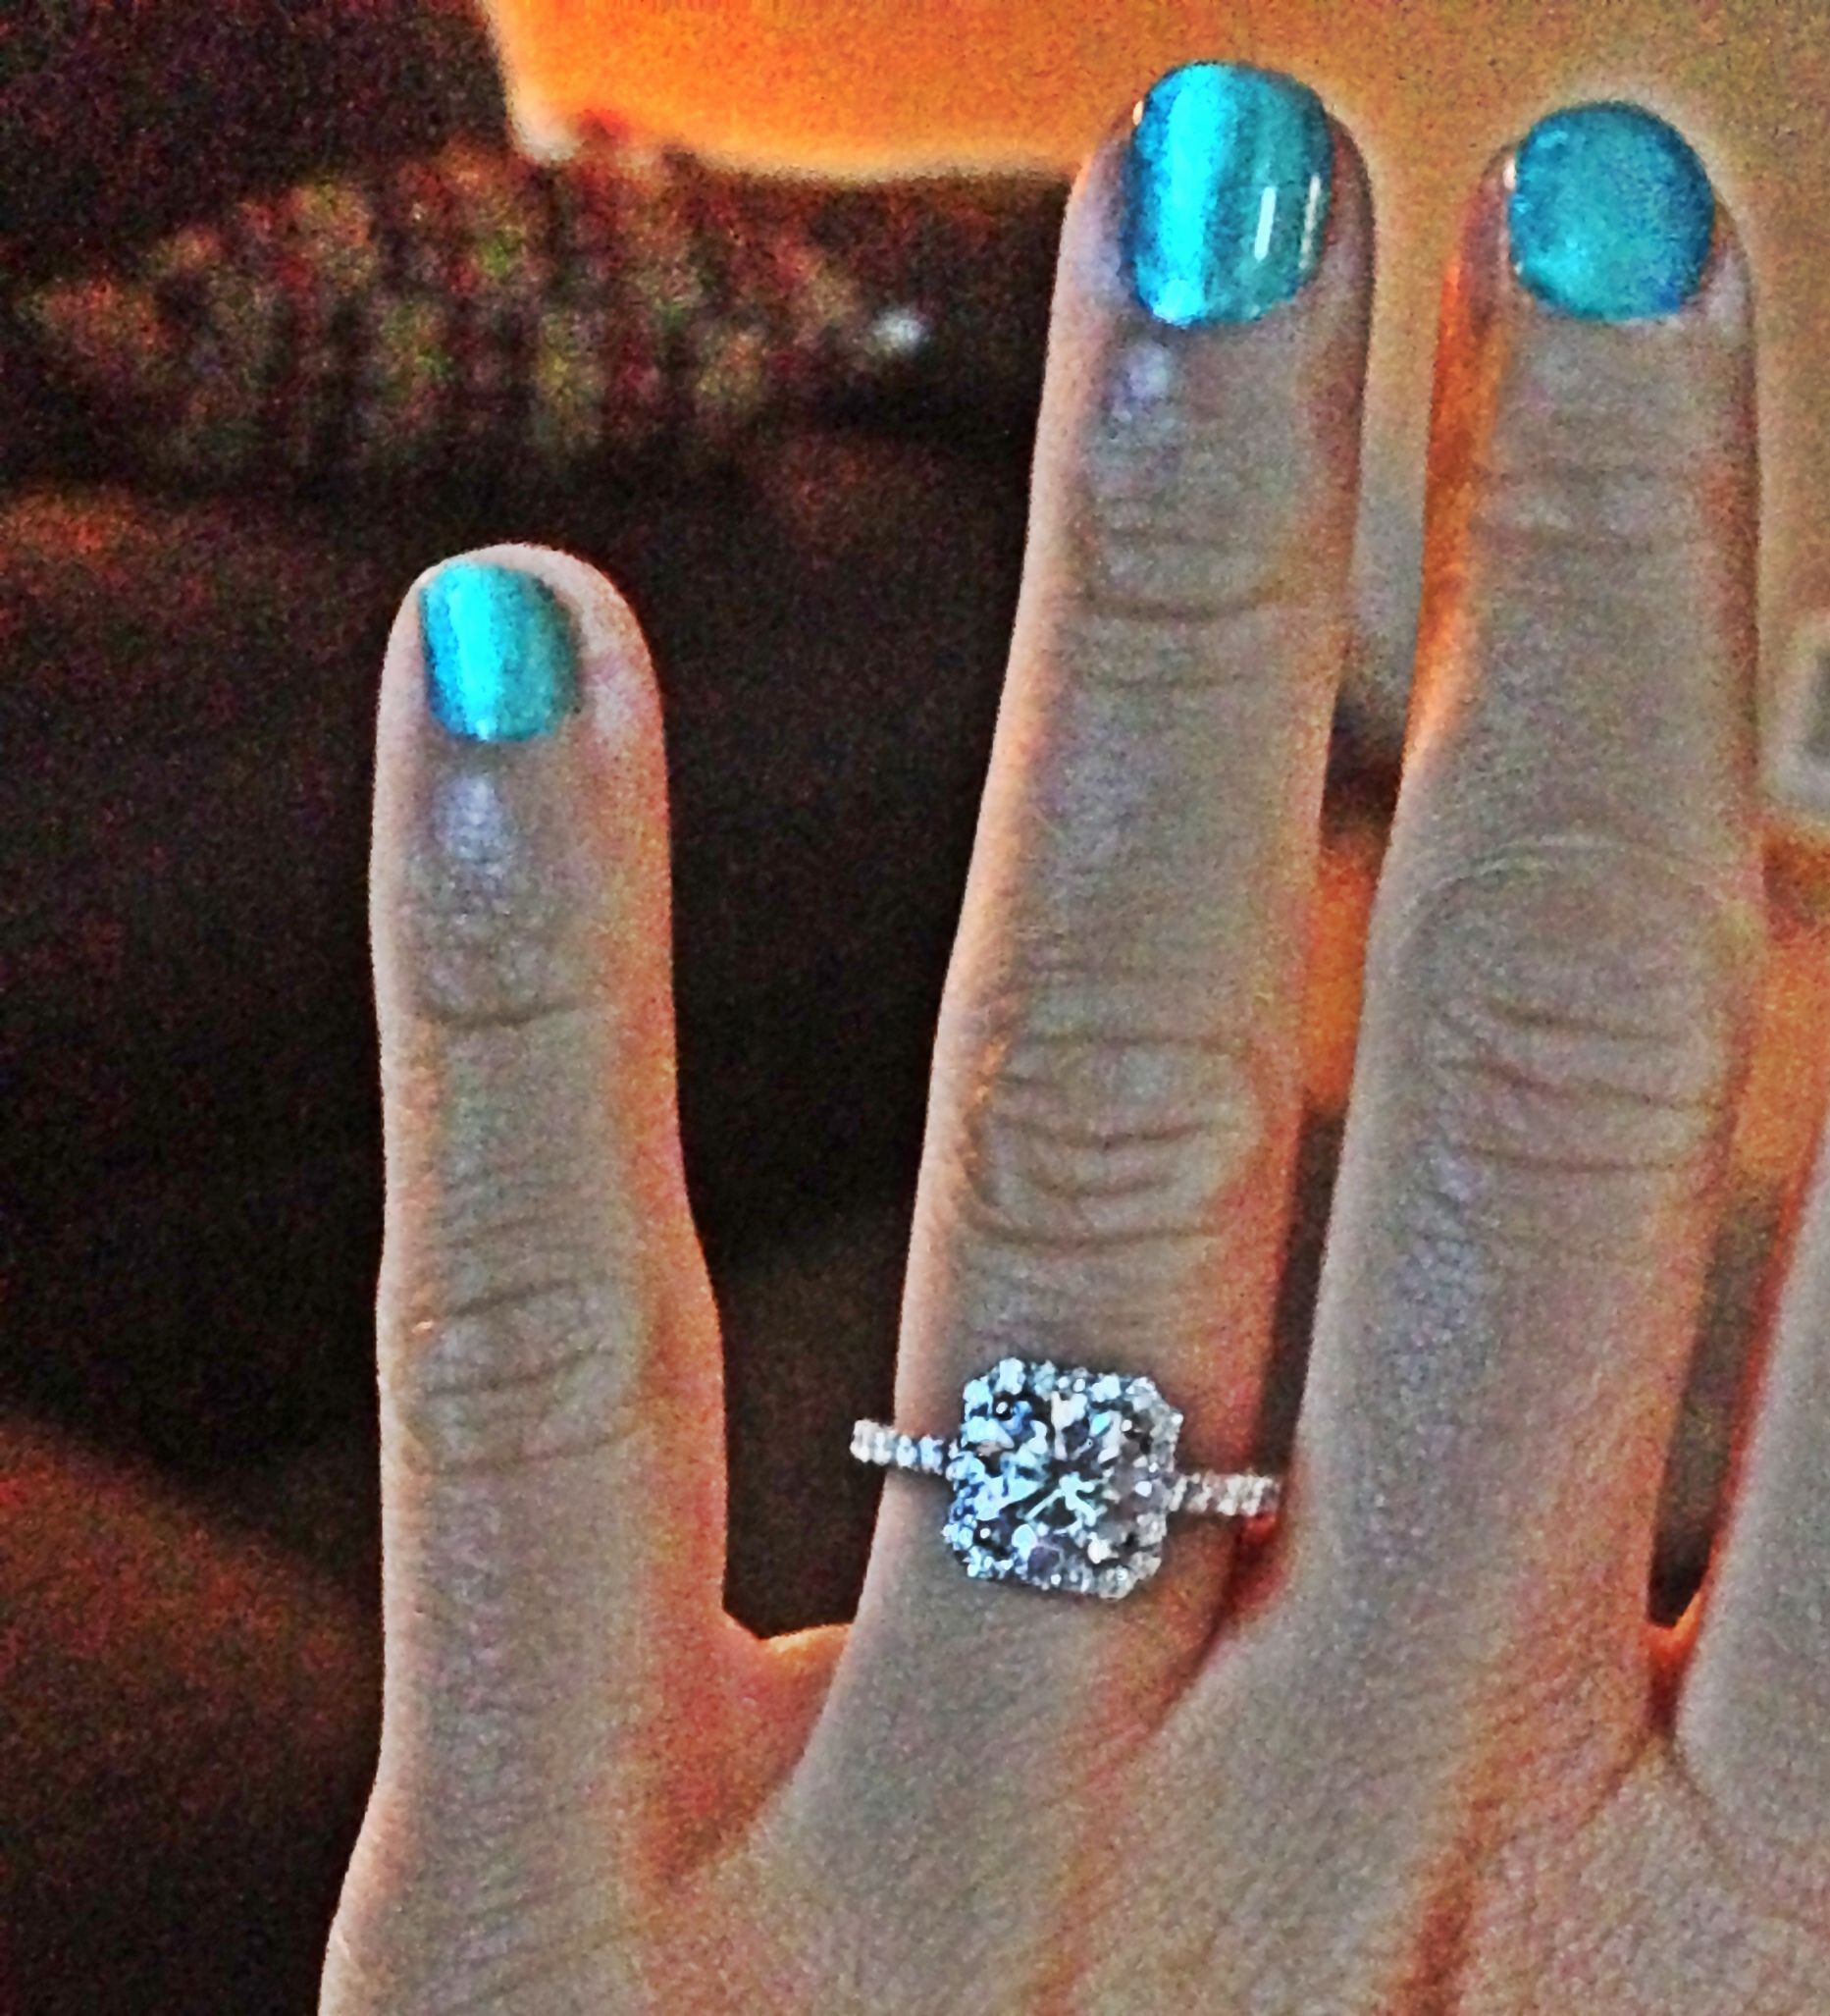 My engagement ring ❤